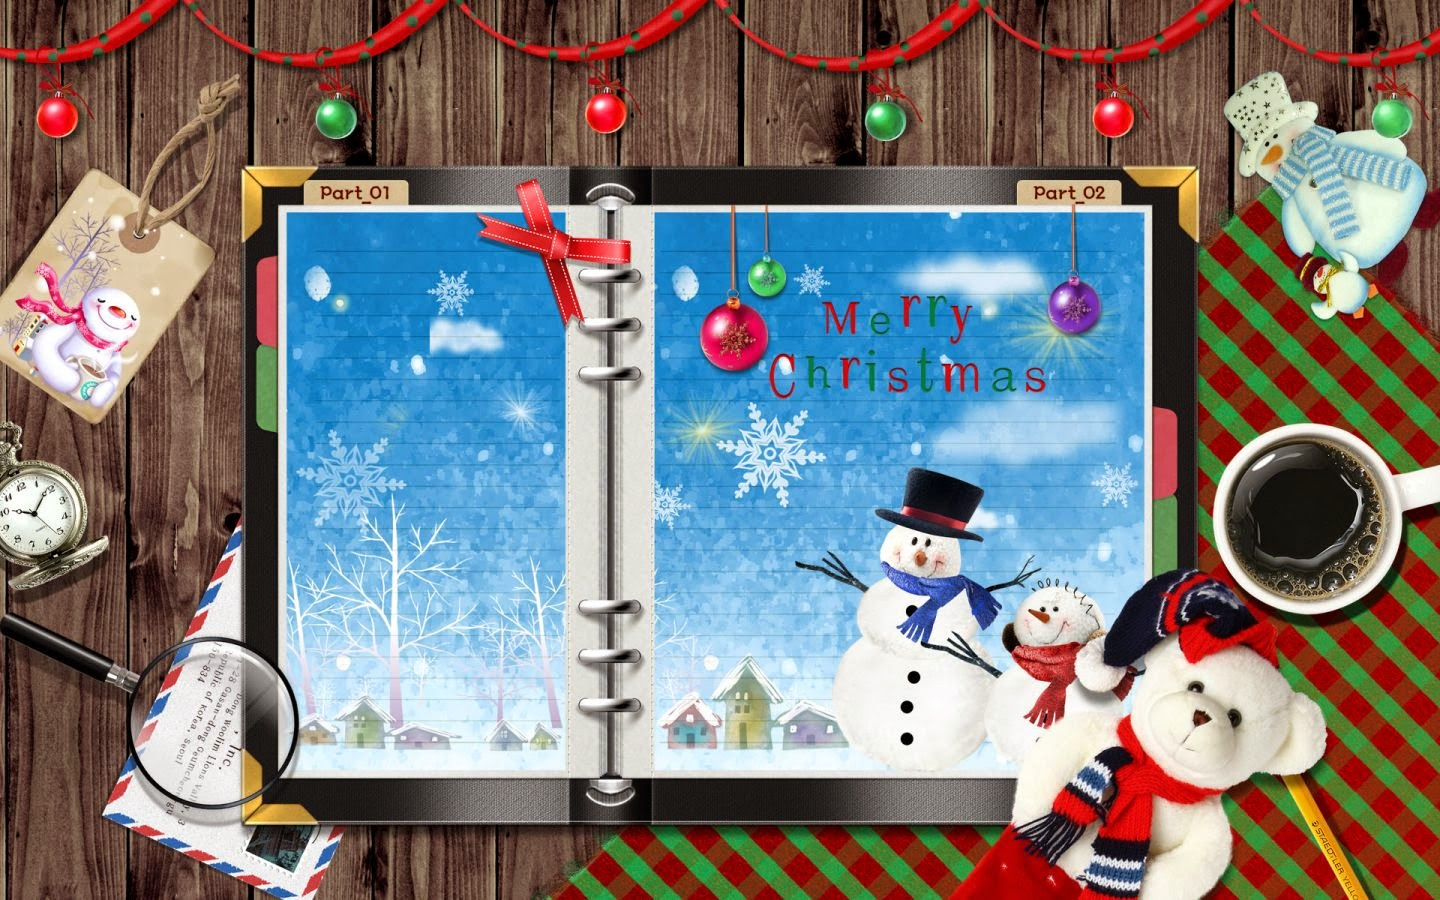 Merry-Christmas-wishes-greetings-card-with-teddy-bear-ornaments-image-picture.jpg